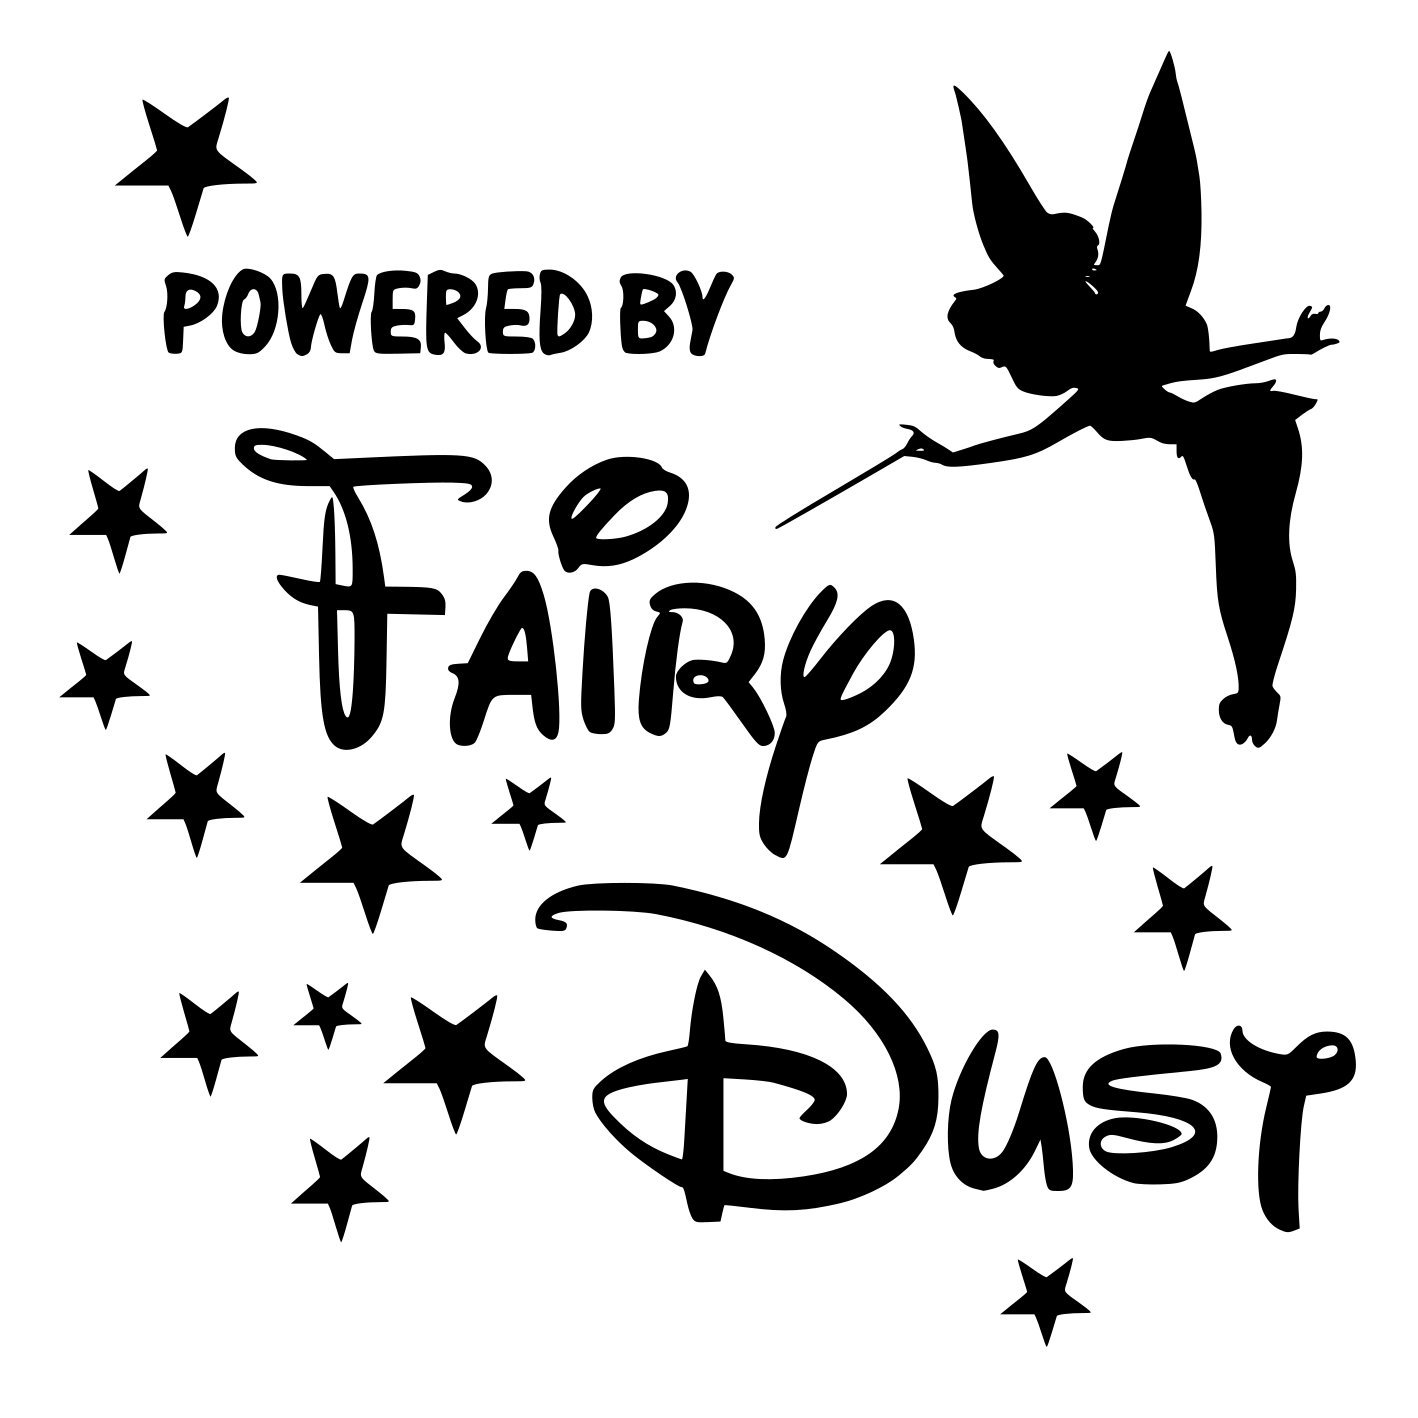 Tinkerbell Fairy Powered by Fairydust Car Sticker//Decal Small